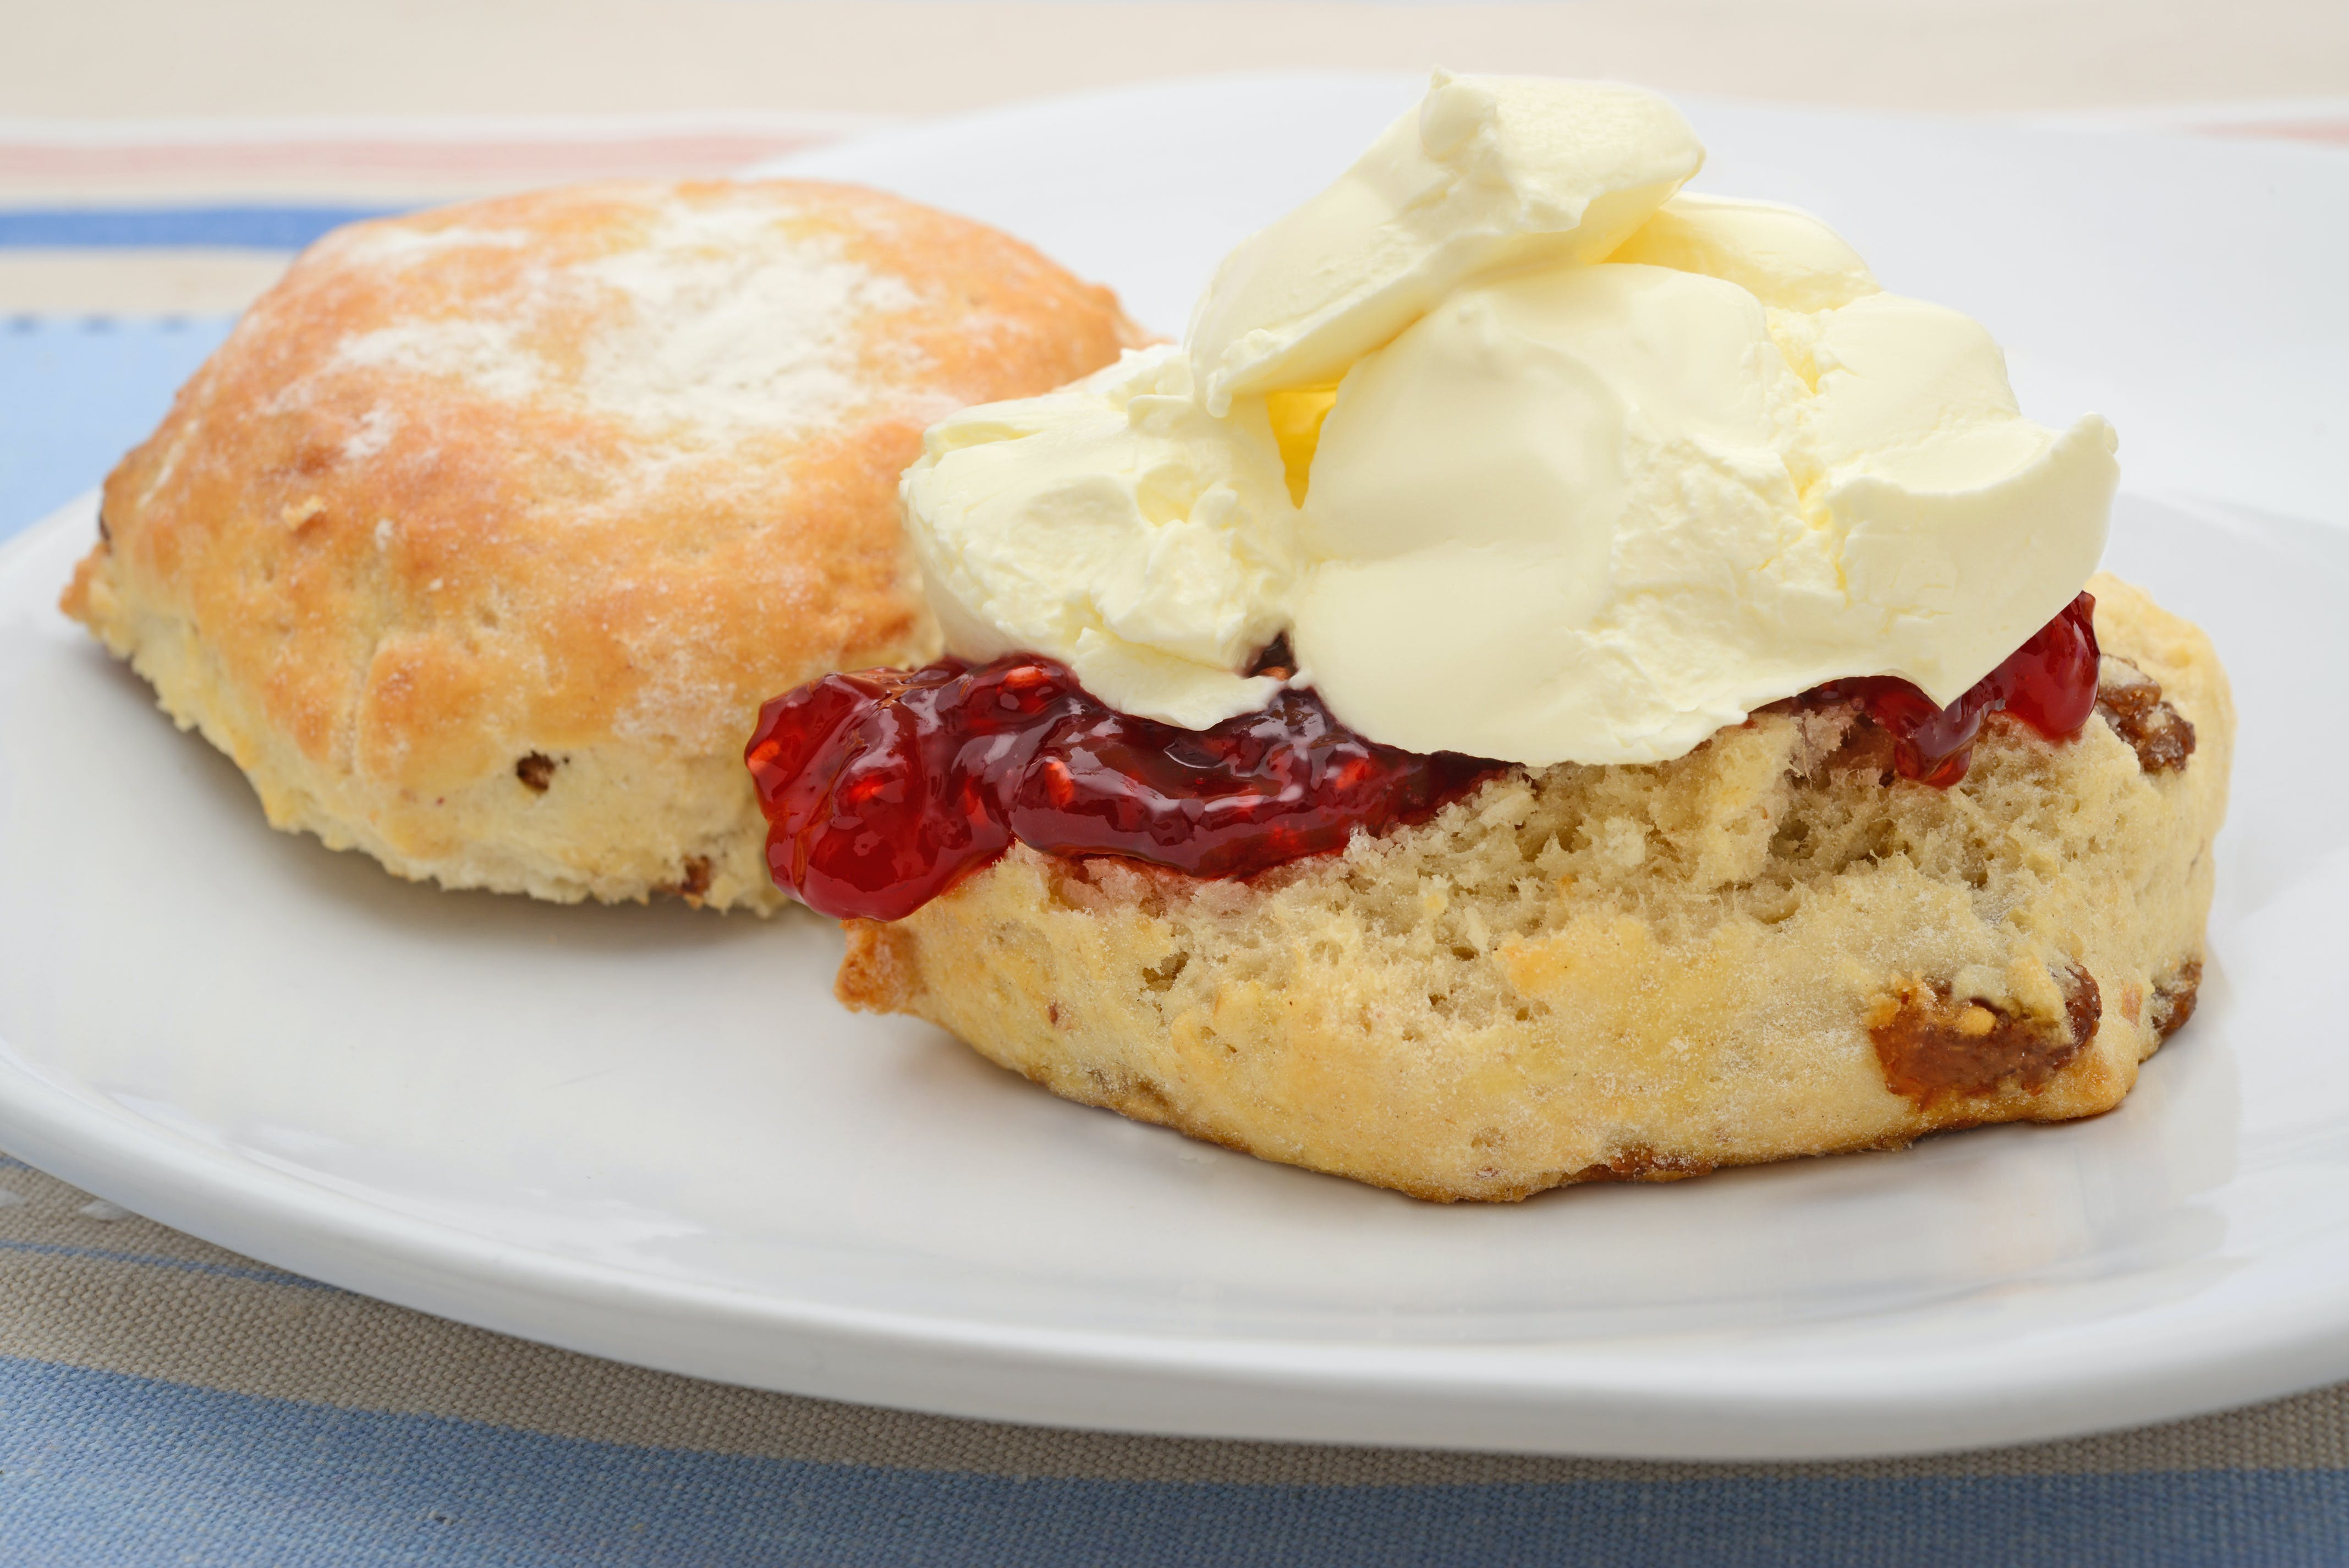 Home baked scones with clotted cream & jam